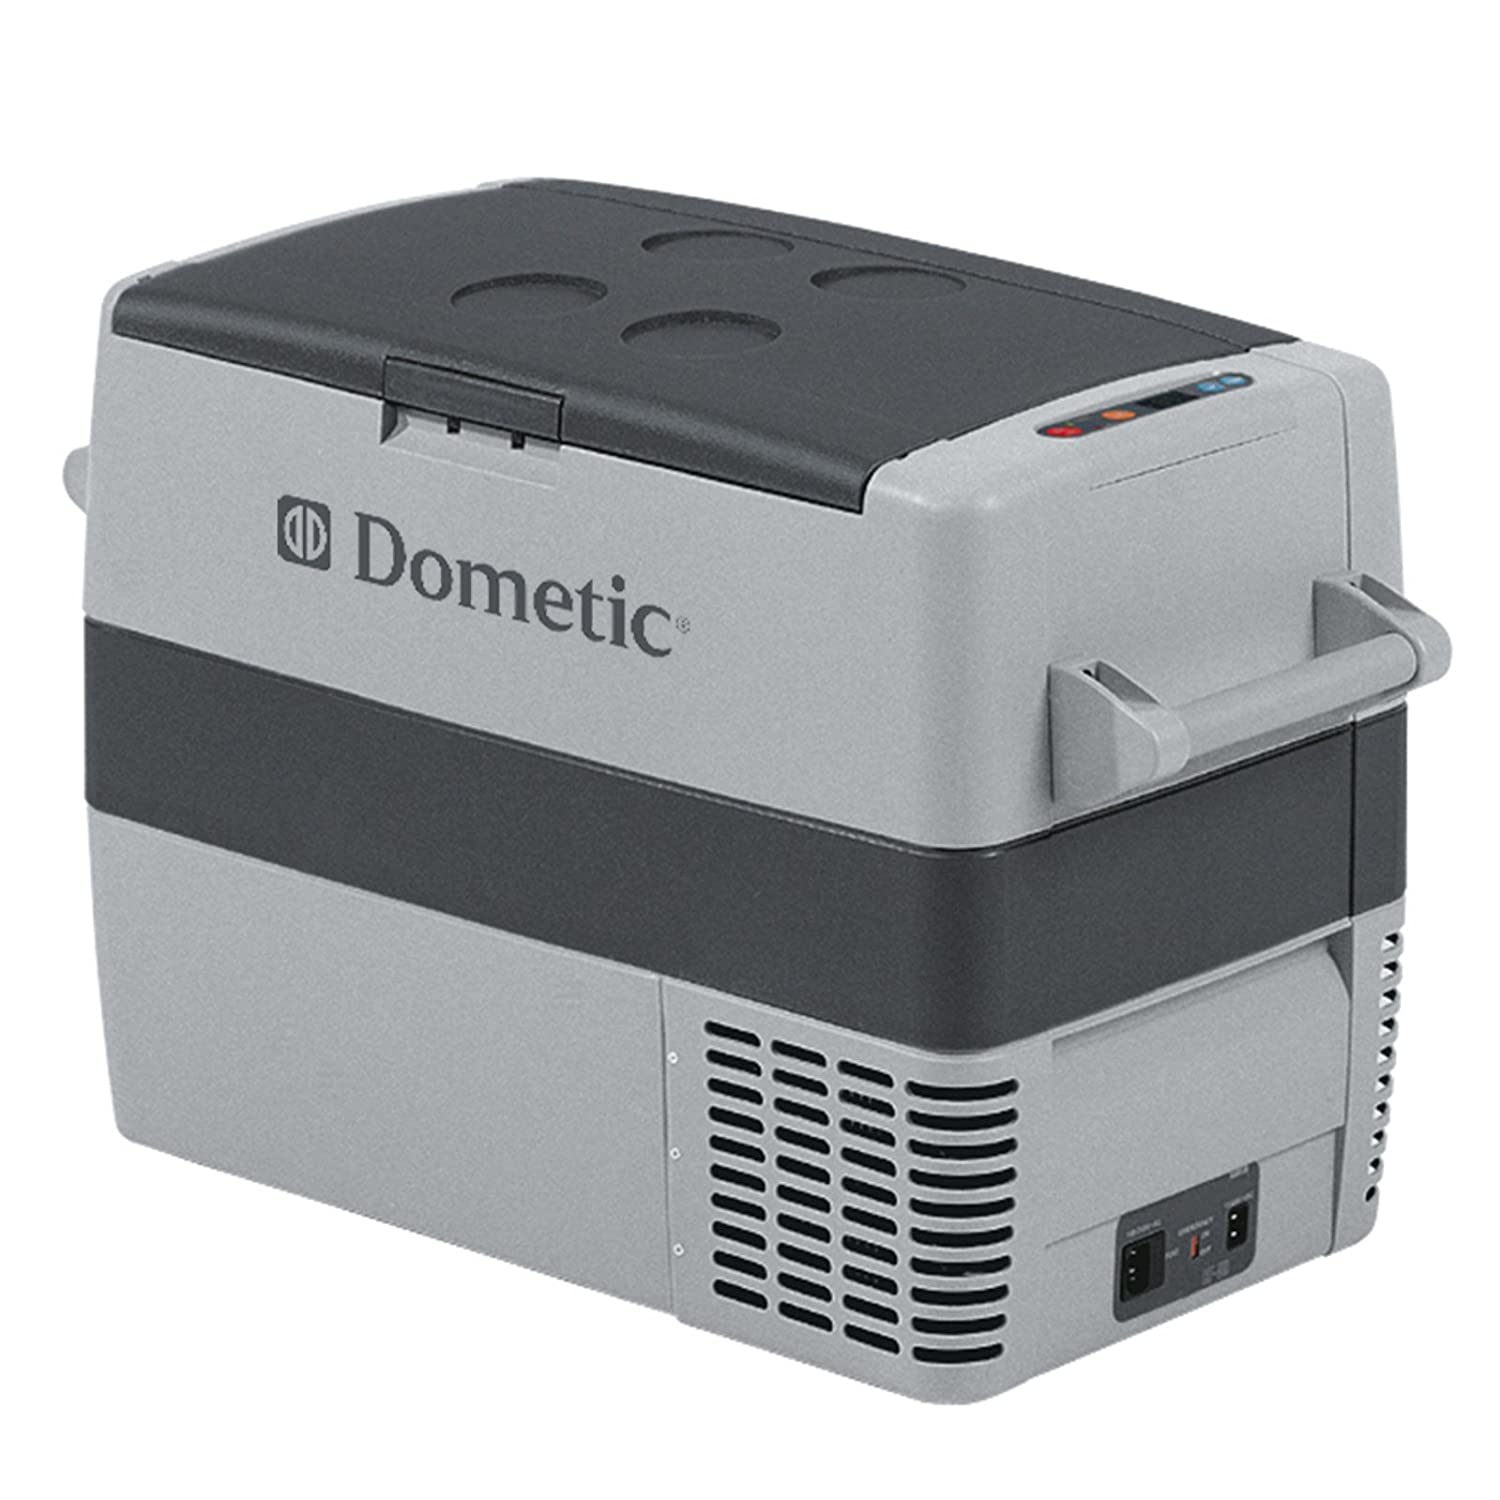 Dometic CF-050AC110 Portable Freezer/Refrigerator Most Popular, Gray